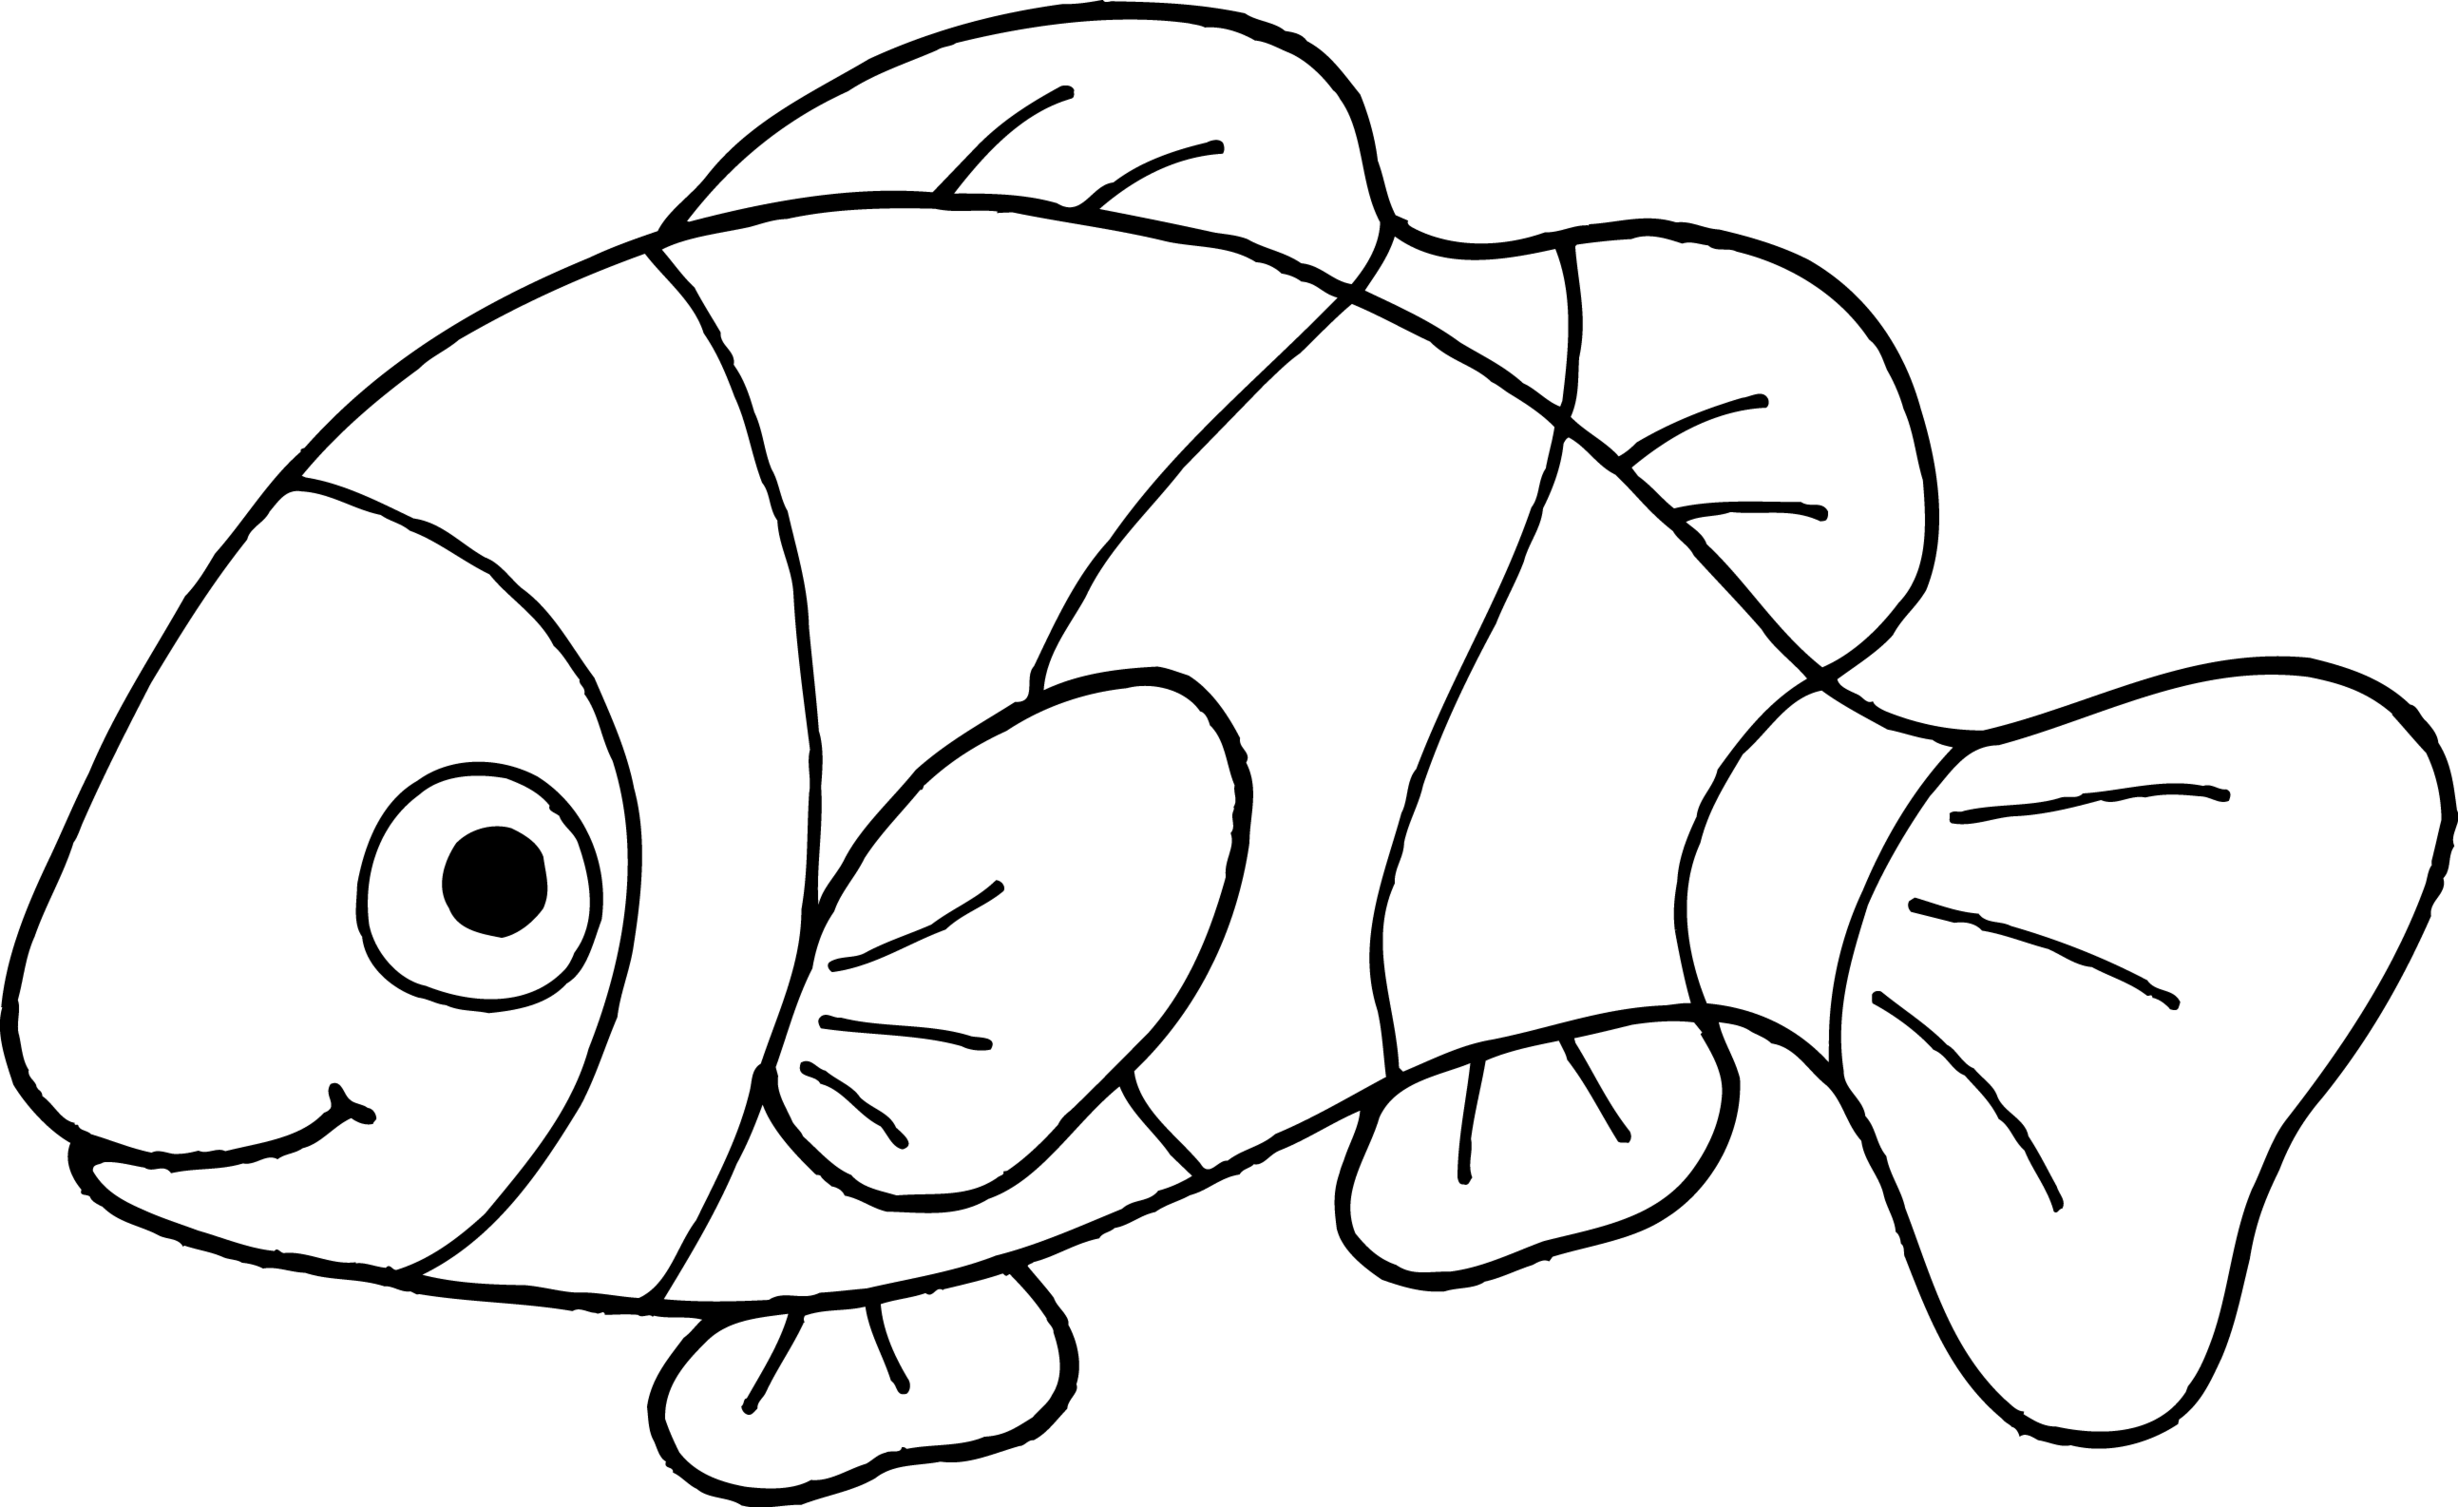 Fish black and white. Lunchbox clipart outline